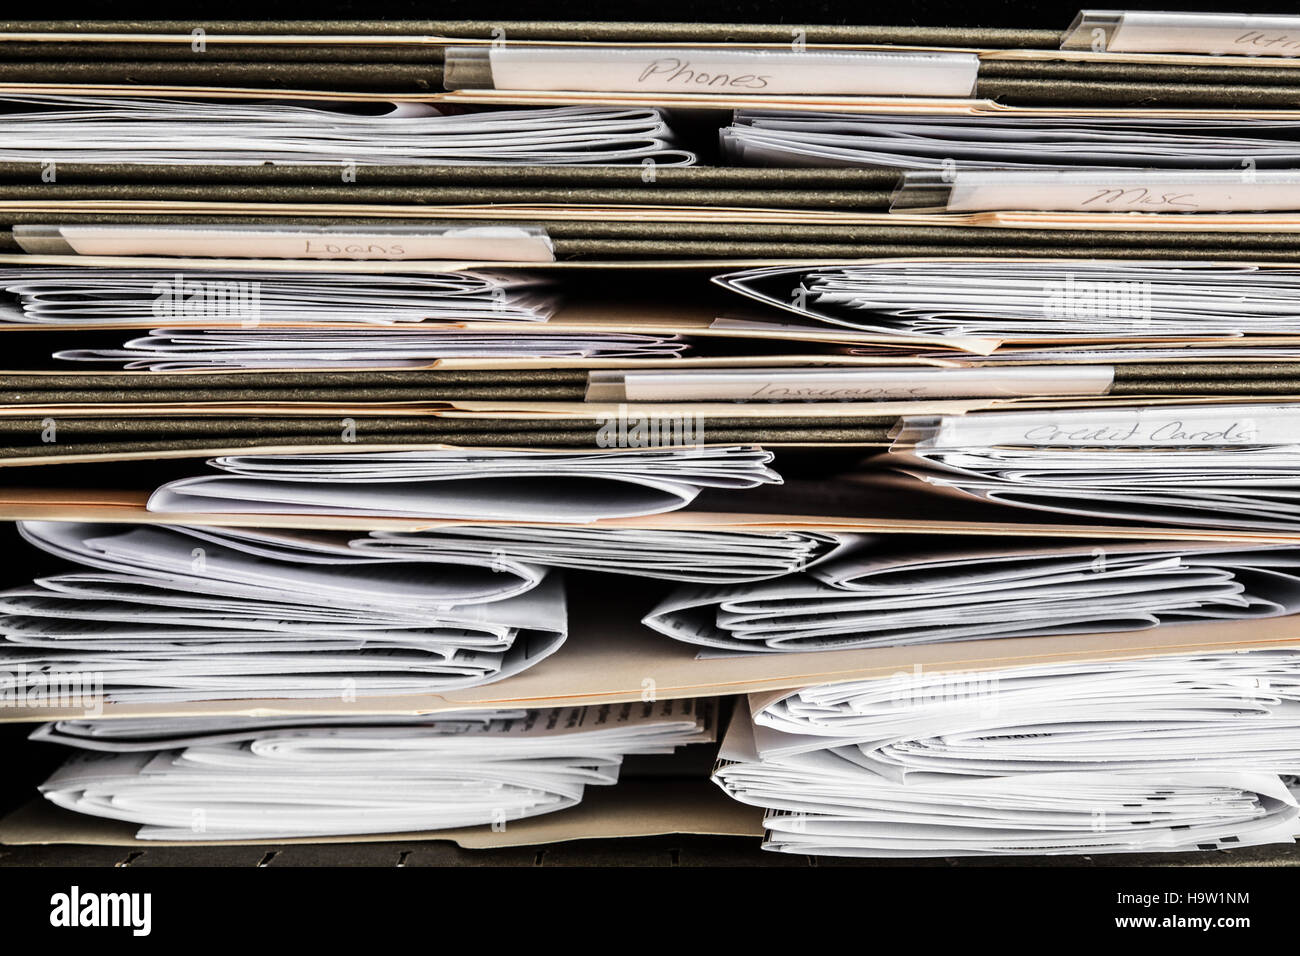 View of papers, bills and documents in file folders - Stock Image